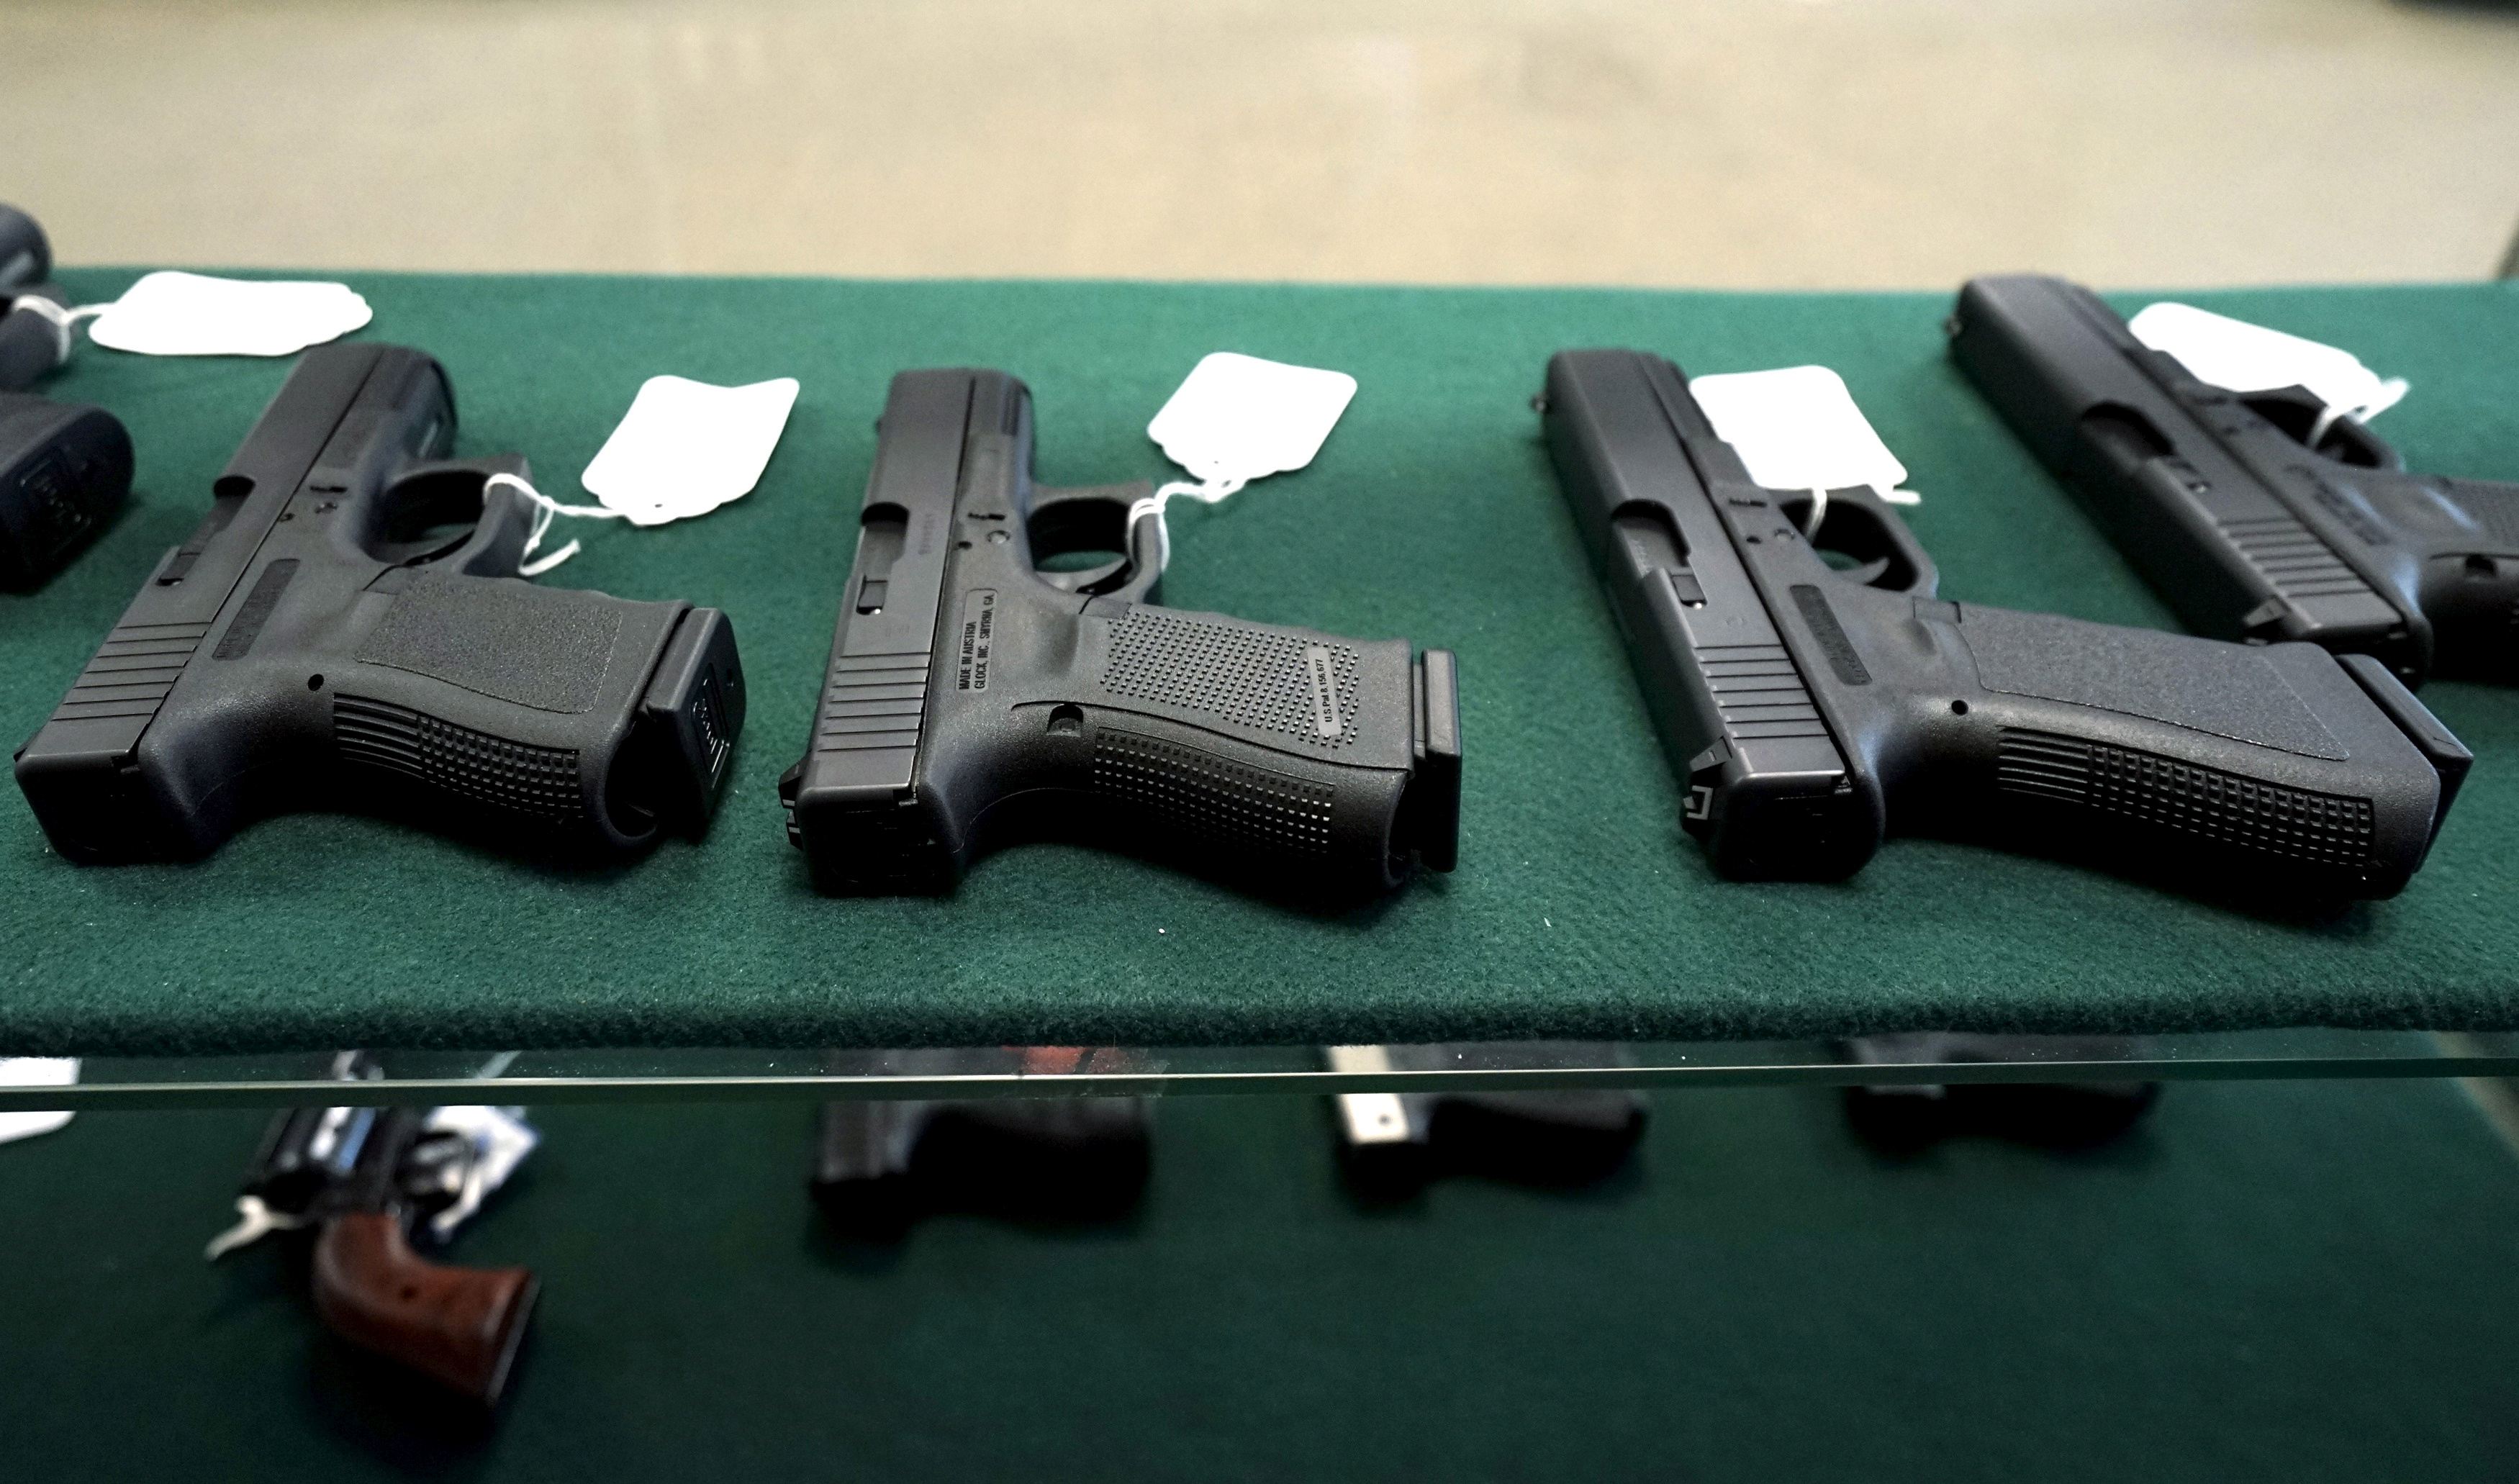 A selection of Glock pistols are seen for sale at the Pony Express Firearms shop in Parker, Colorado December 7, 2015. REUTERS/Rick Wilking